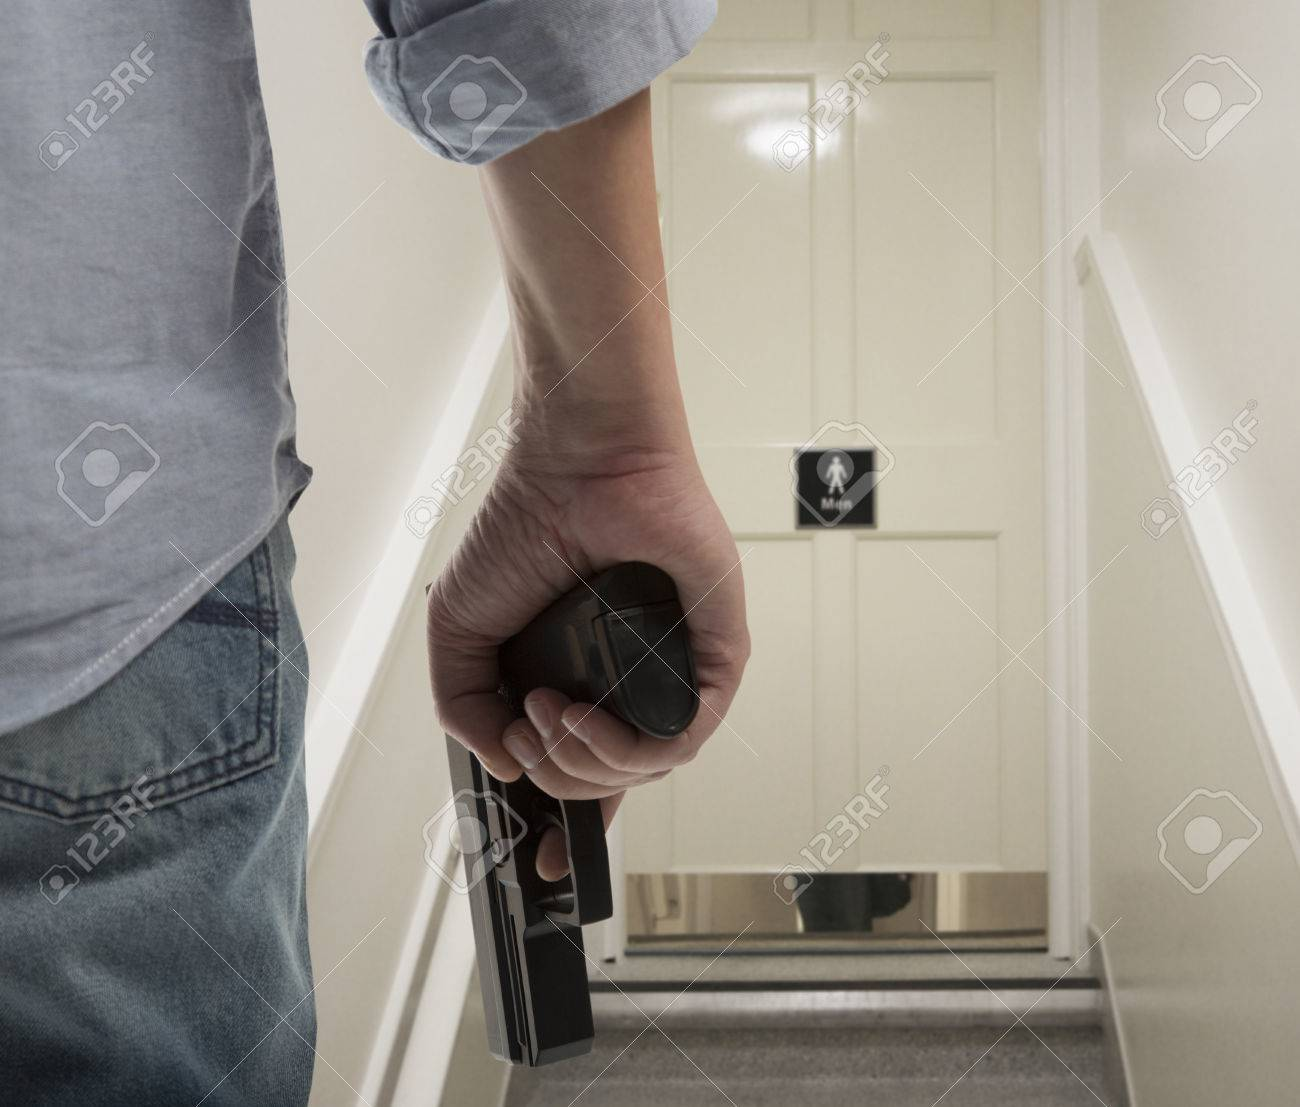 Bodyguard With Gun Protects Client Against An S Water Closet Stock